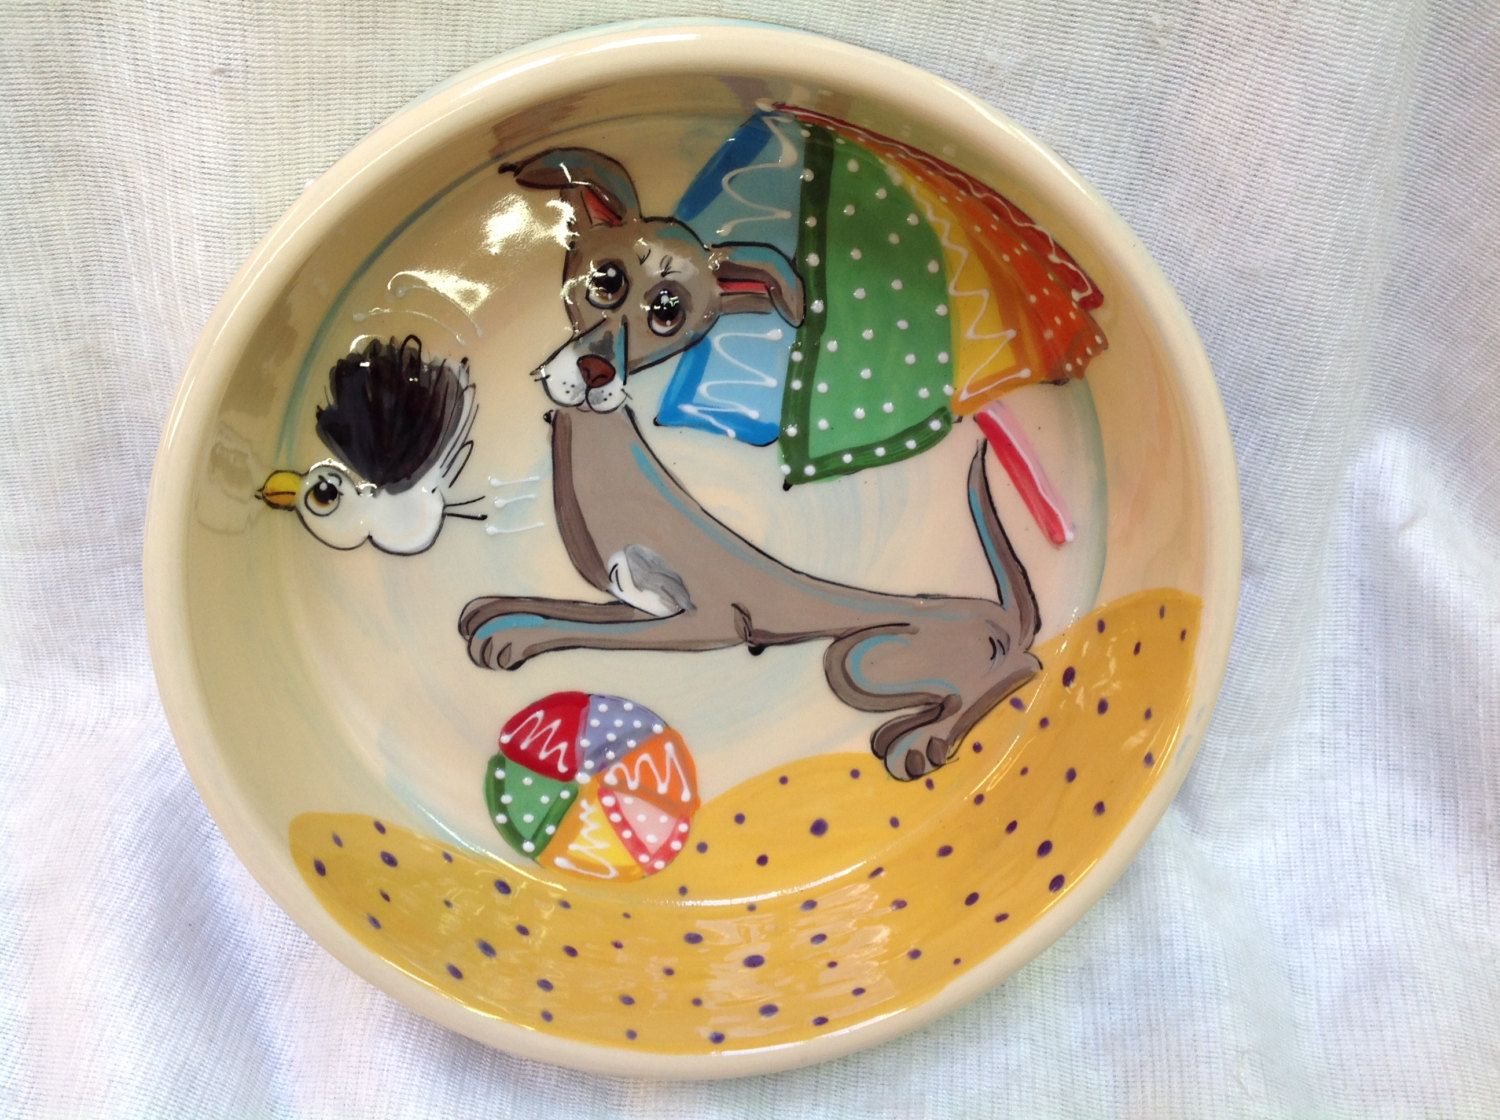 Hand Painted Ceramic Greyhound Dog Bowl signed by Debby Carman Faux Paw Productions by FauxPawProductions on Etsy